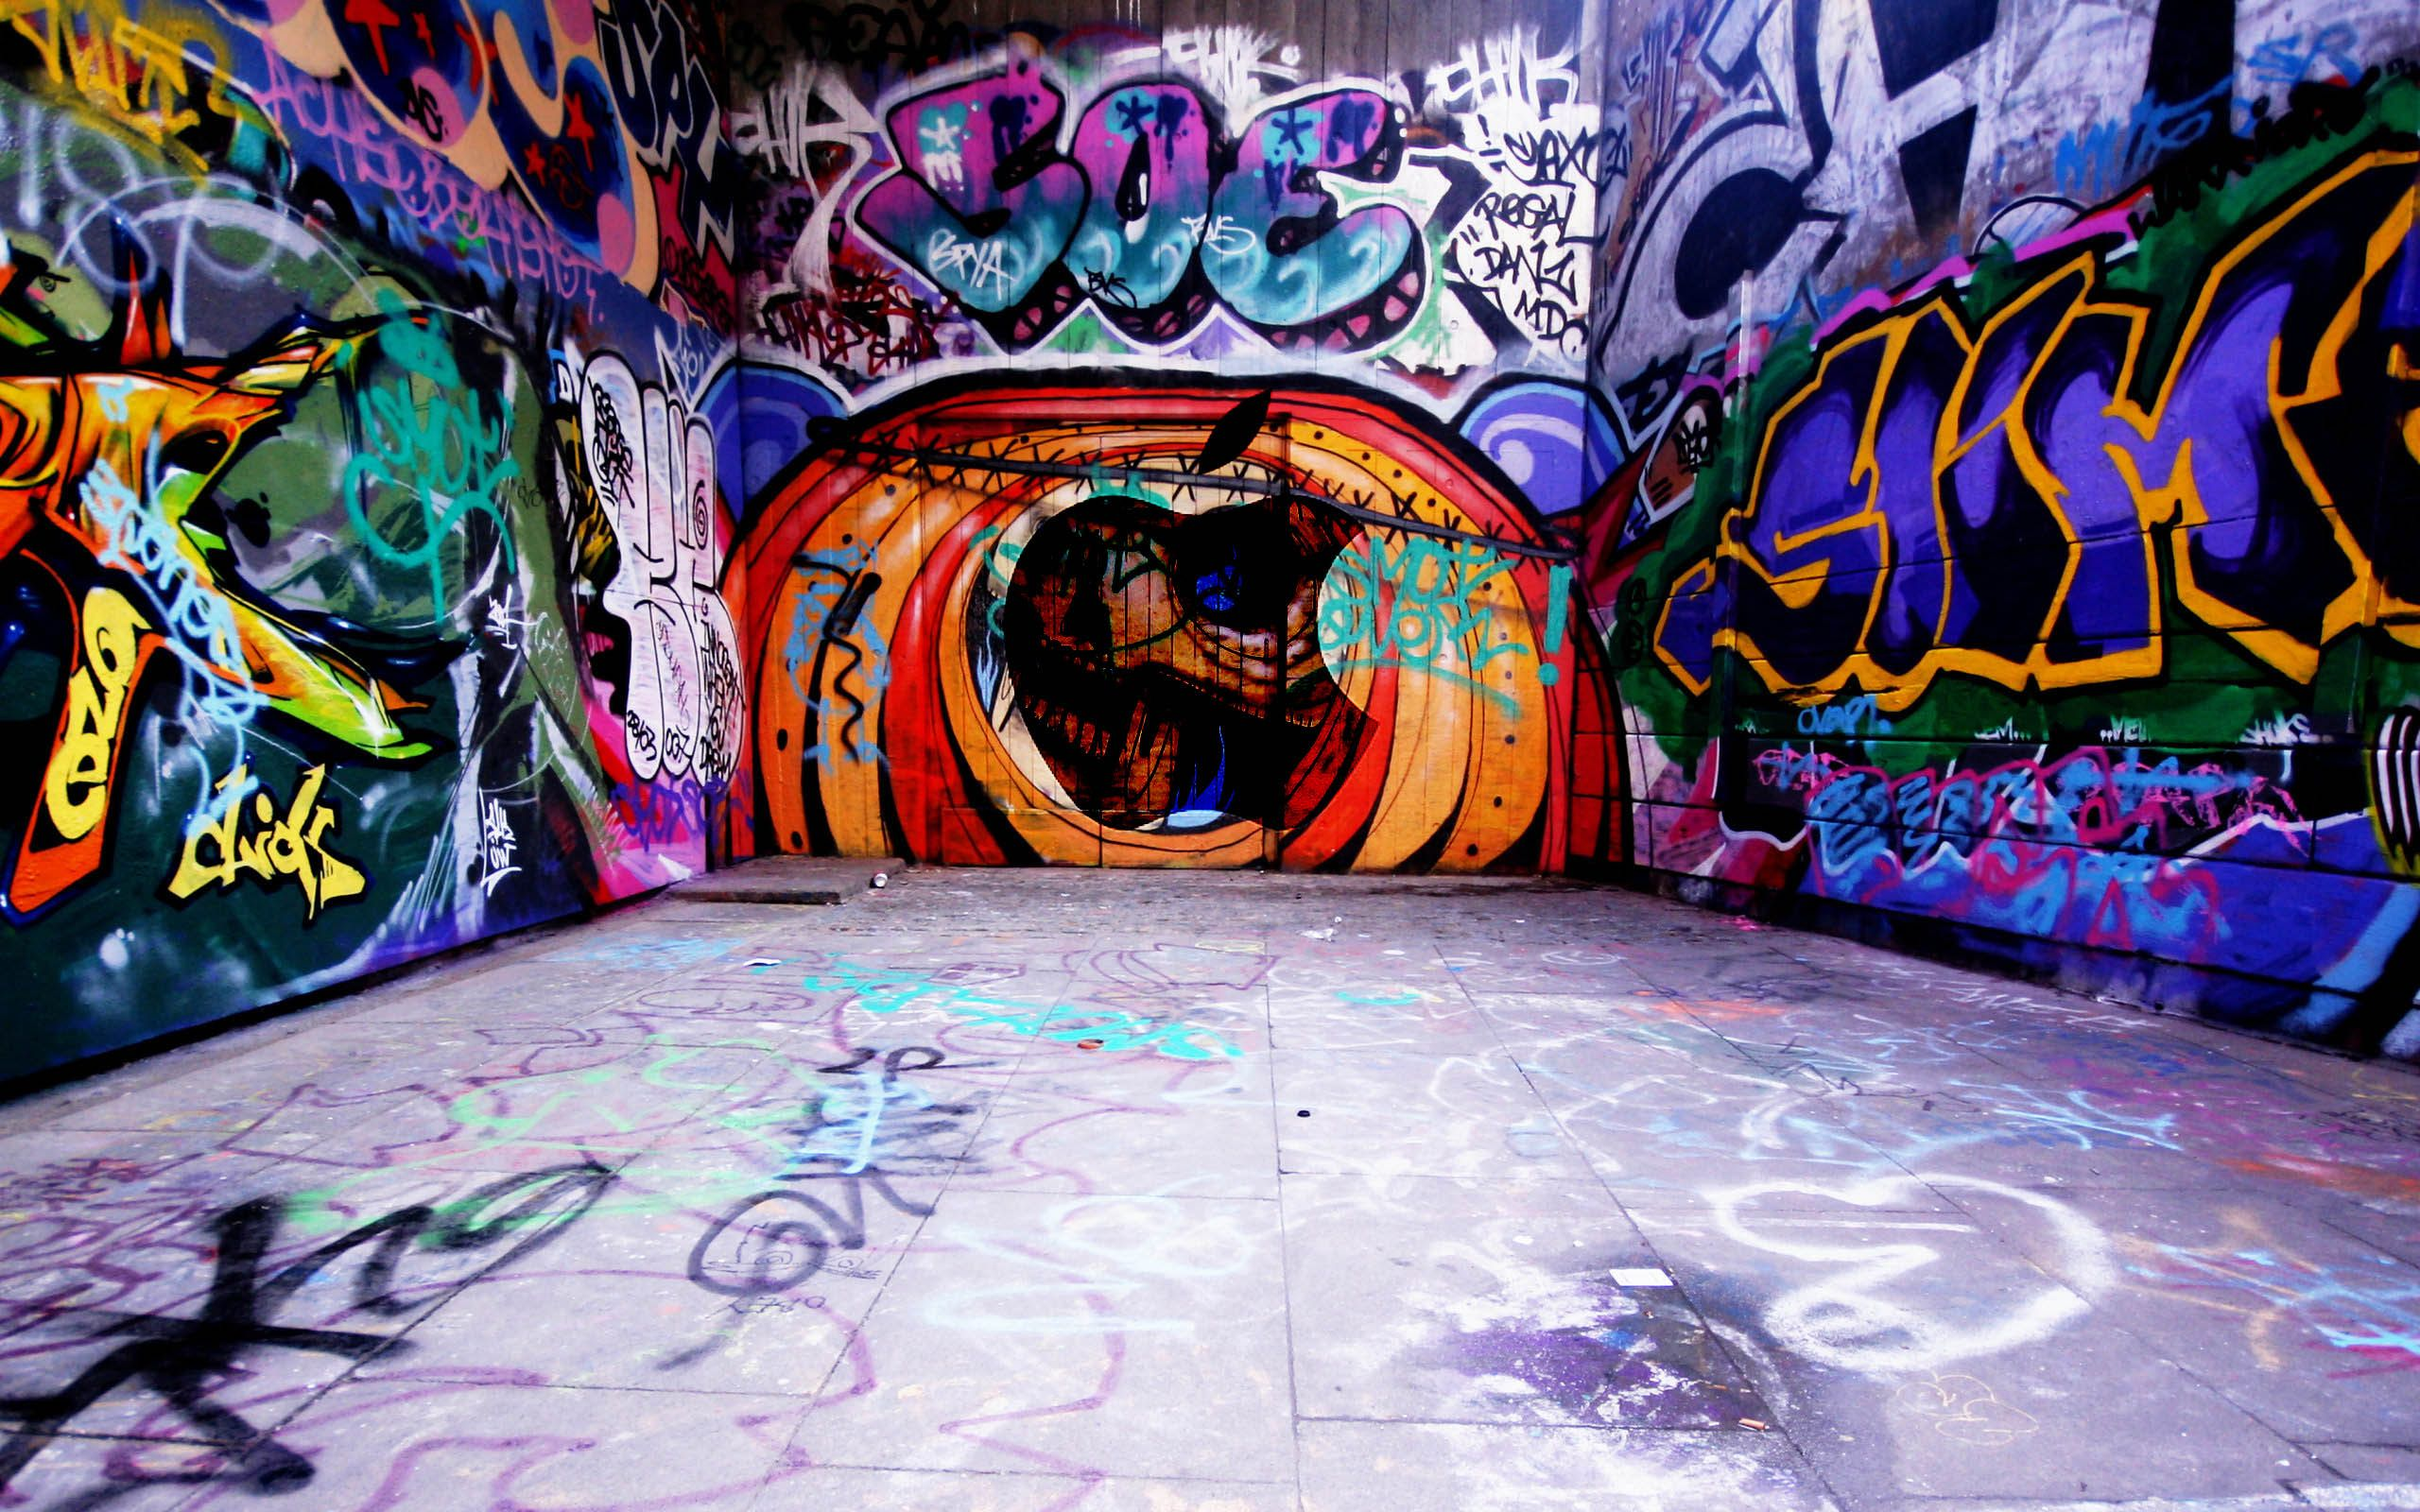 Mac New Wallpapers Underground Graffiti823613.jpeg (2560